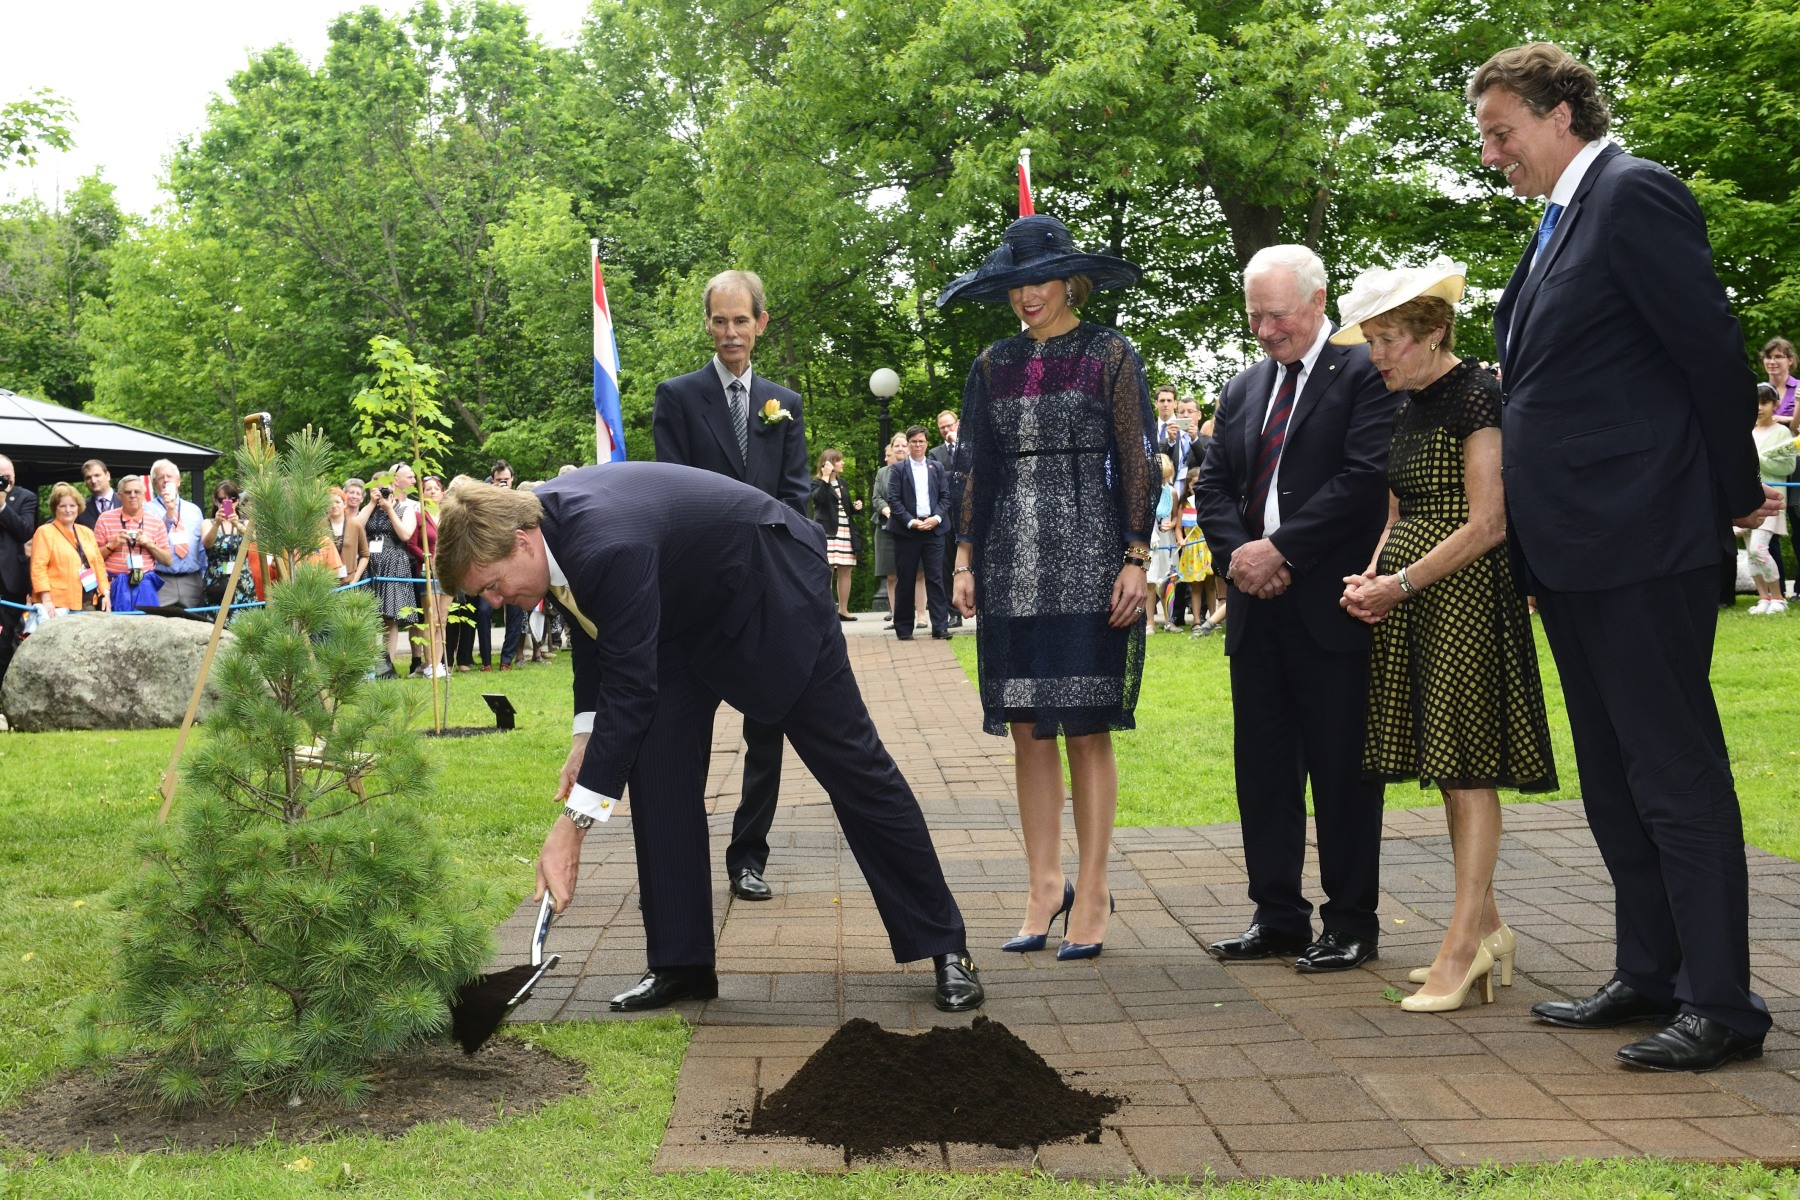 Their Majesties planted an eastern white pine on the grounds of Rideau Hall to commemorate their visit to Canada. It is located next to the tree planted by His Majesty's grandmother, Queen Juliana, and close to the tree planted by his mother, Queen Beatrix. It has been chosen as a living symbol of the strong ties and growing relationships between our two peoples.